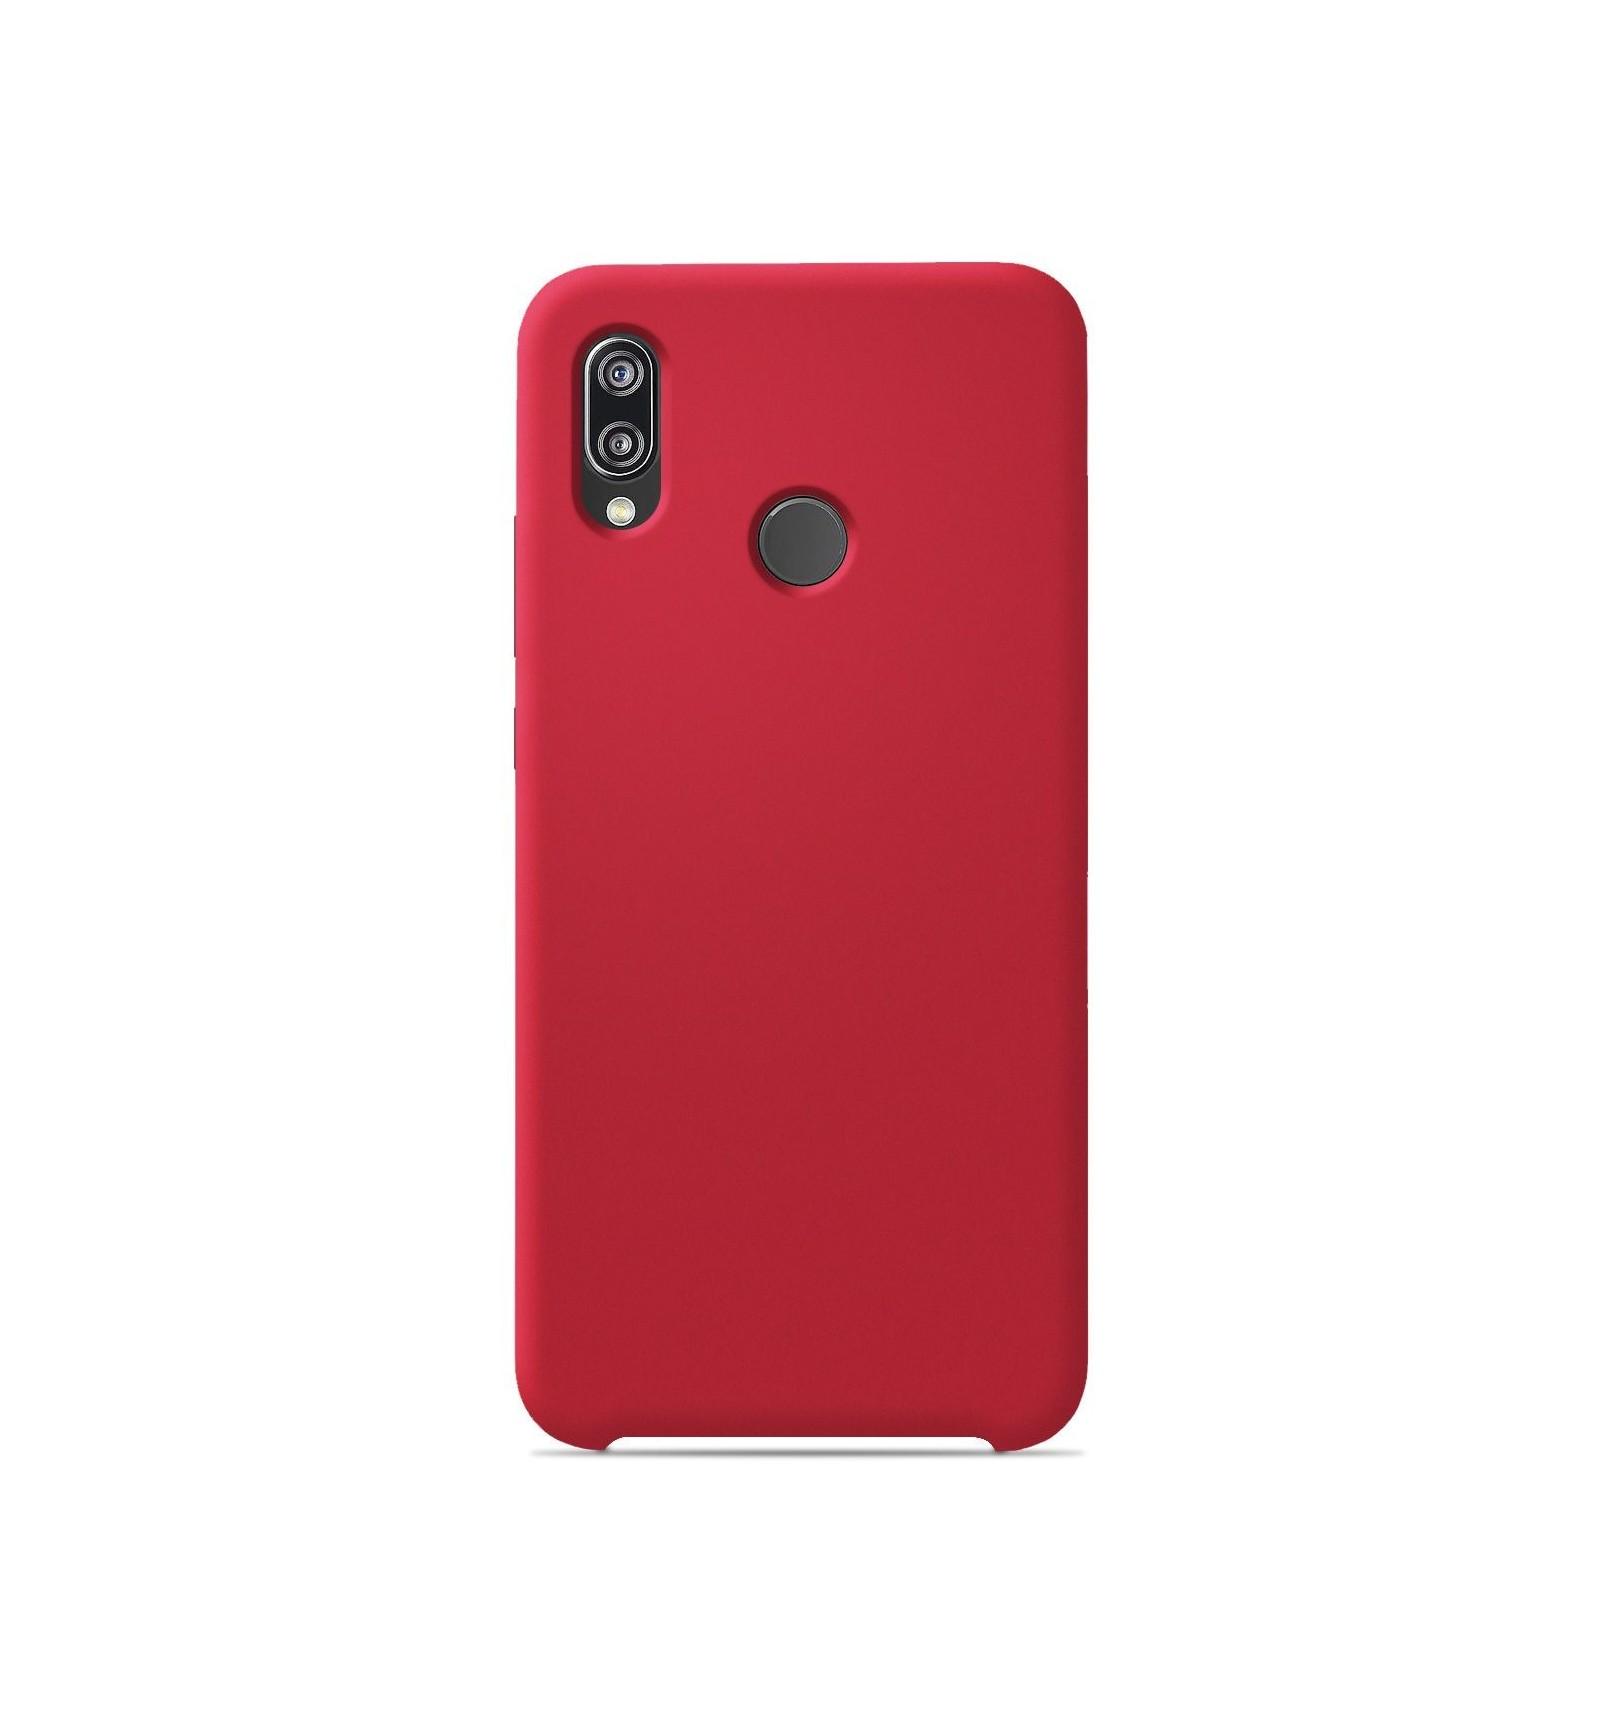 Coque Huawei P20 Lite Silicone Soft Touch - Rouge